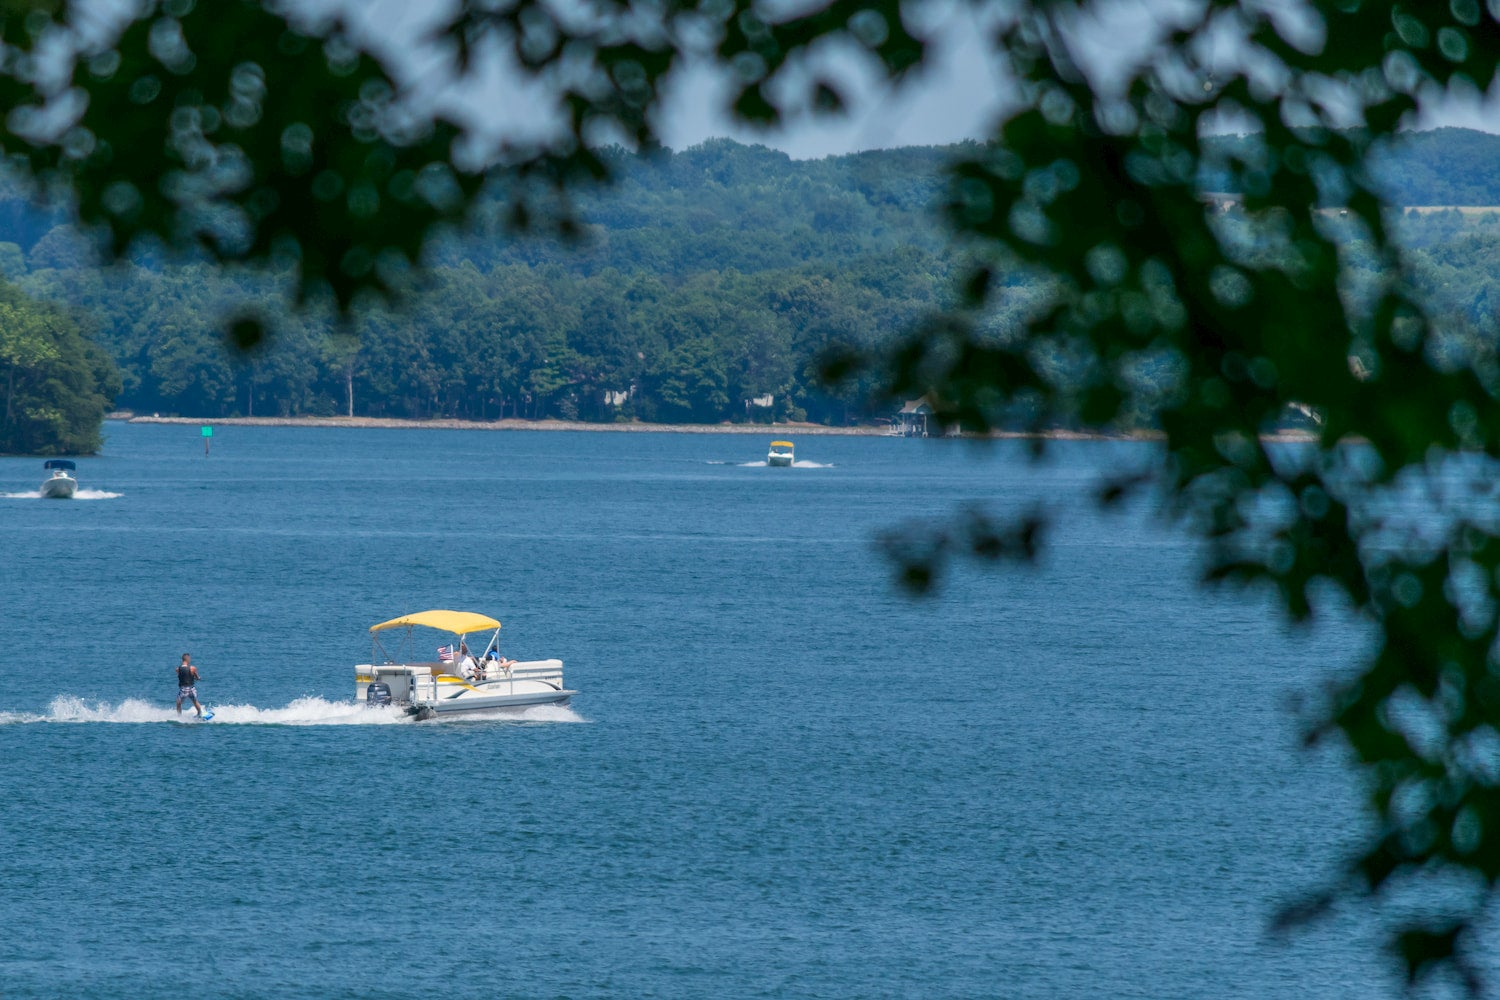 waterskiing at smith mountain lake